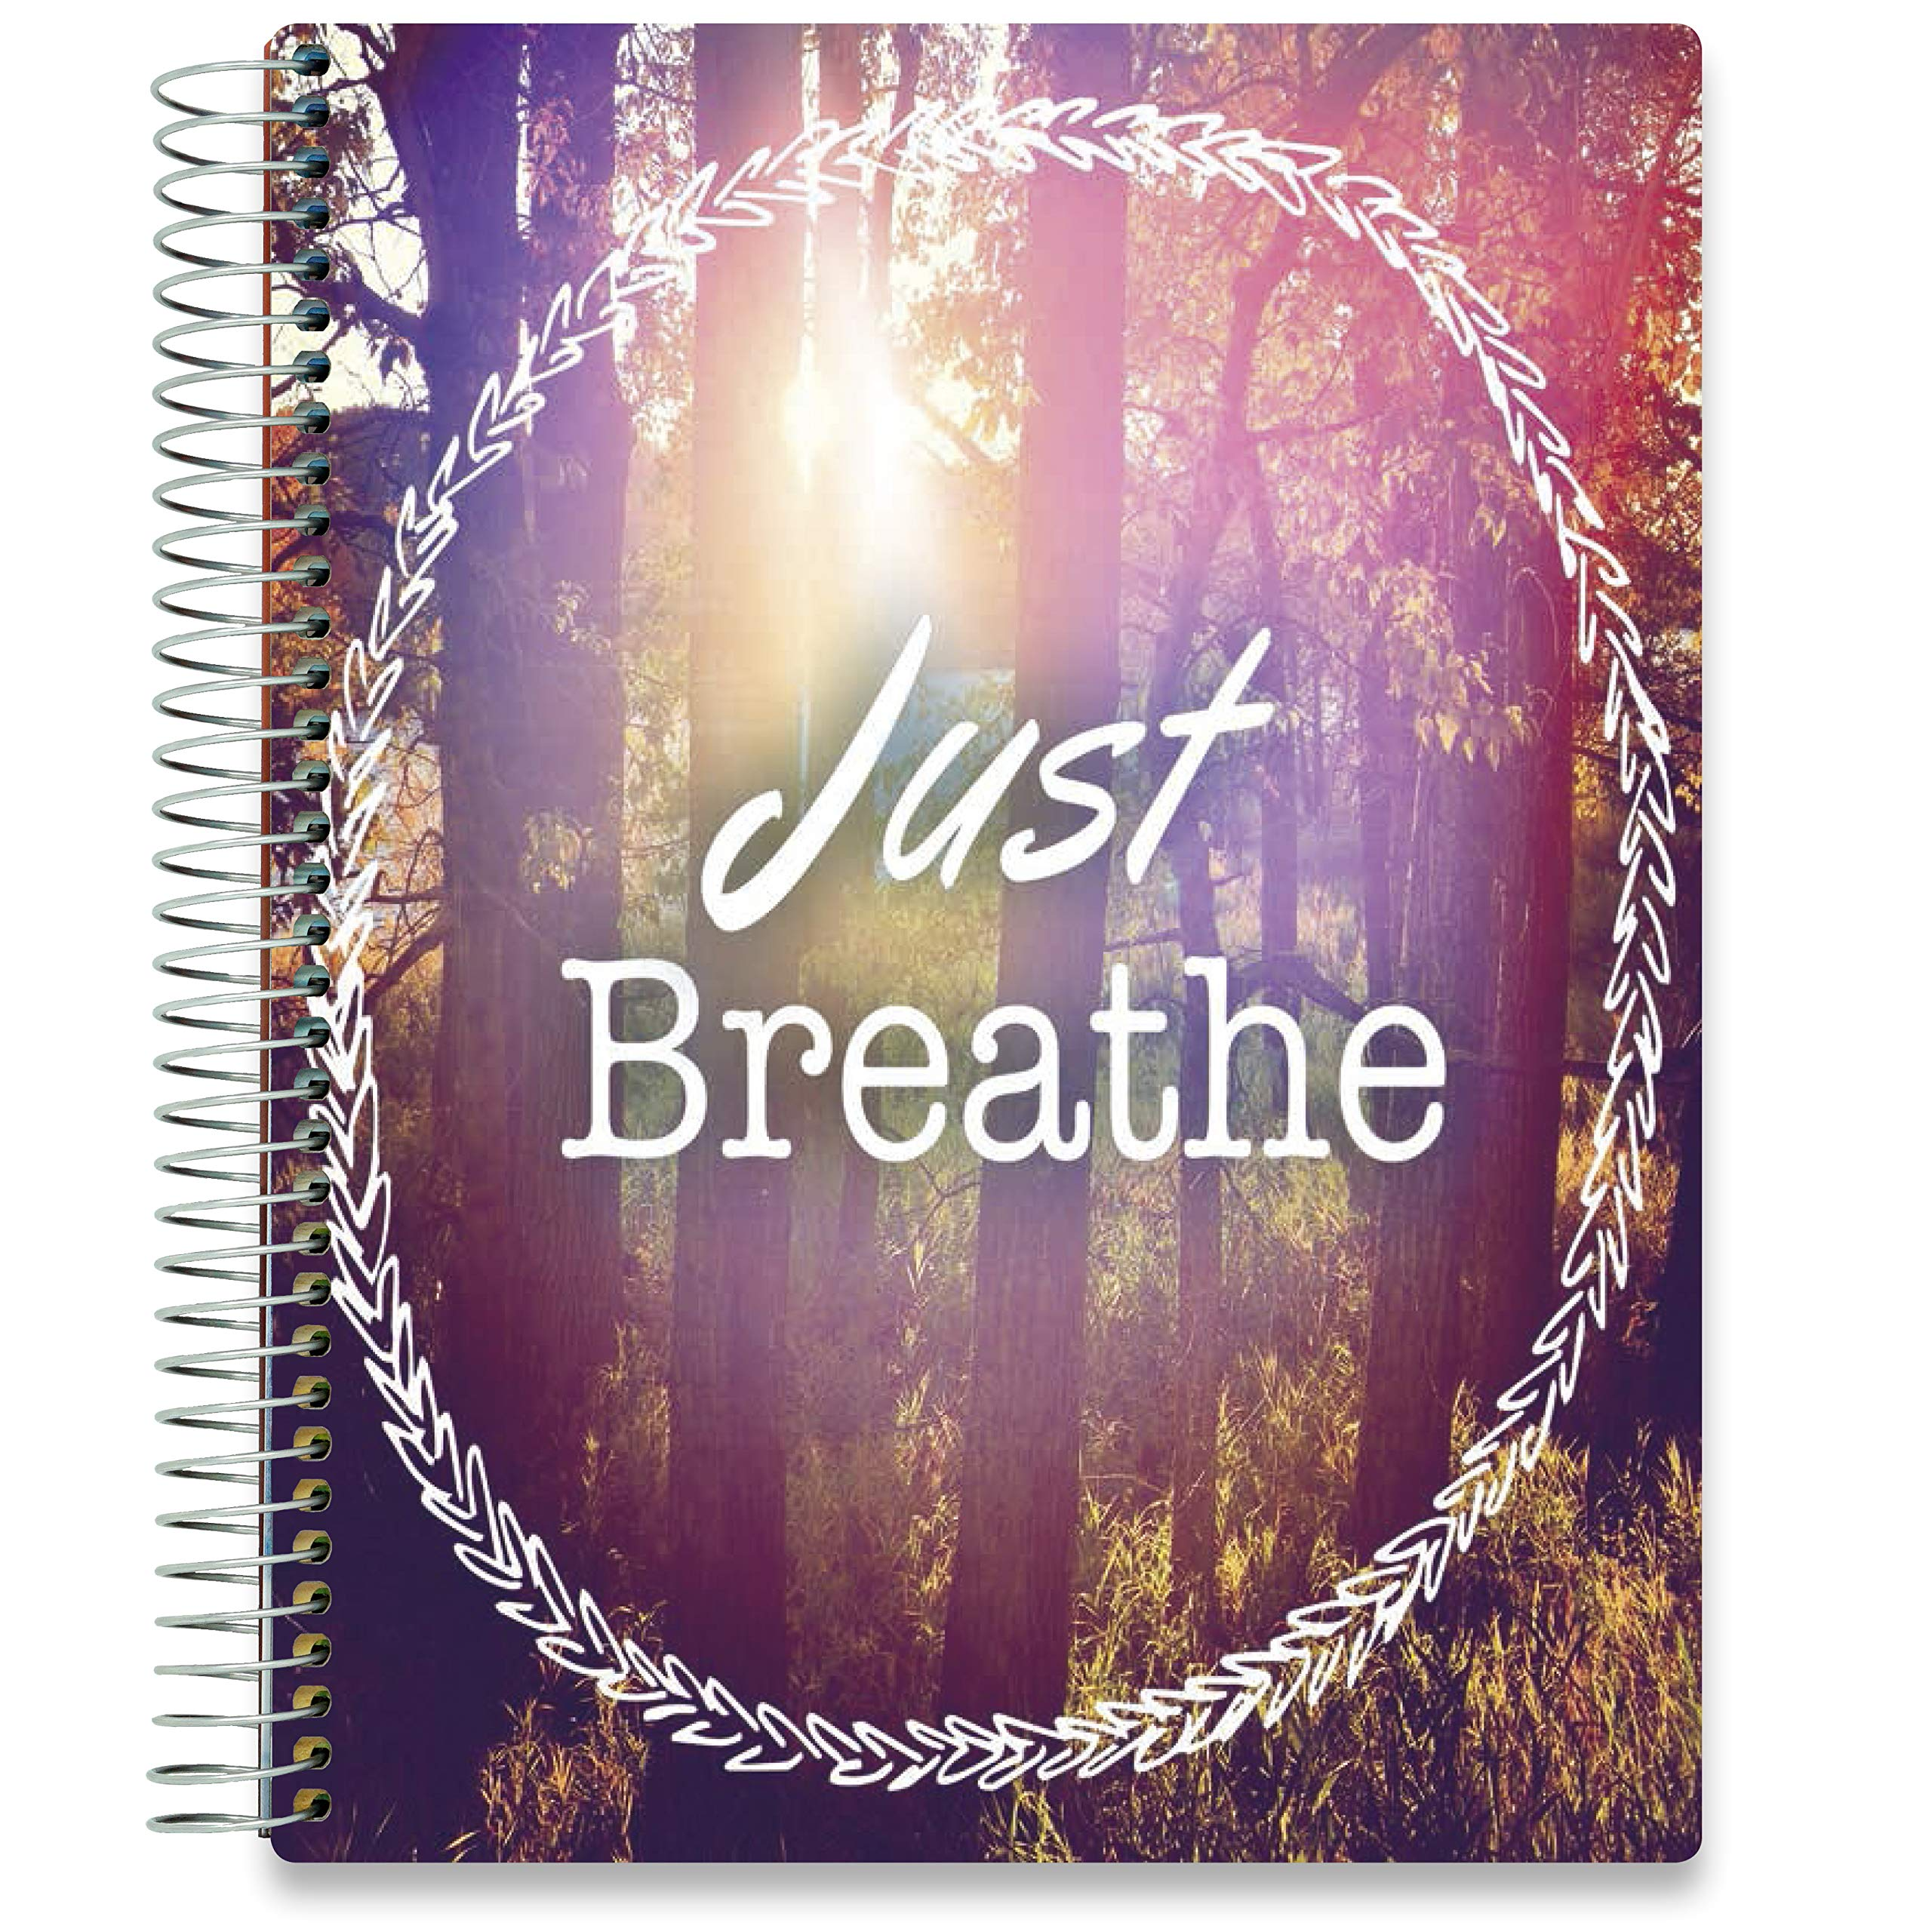 Tools4Wisdom Planner July 2019-2020 - Dated July 2019- July 2020-8.5 x 11 Hardcover